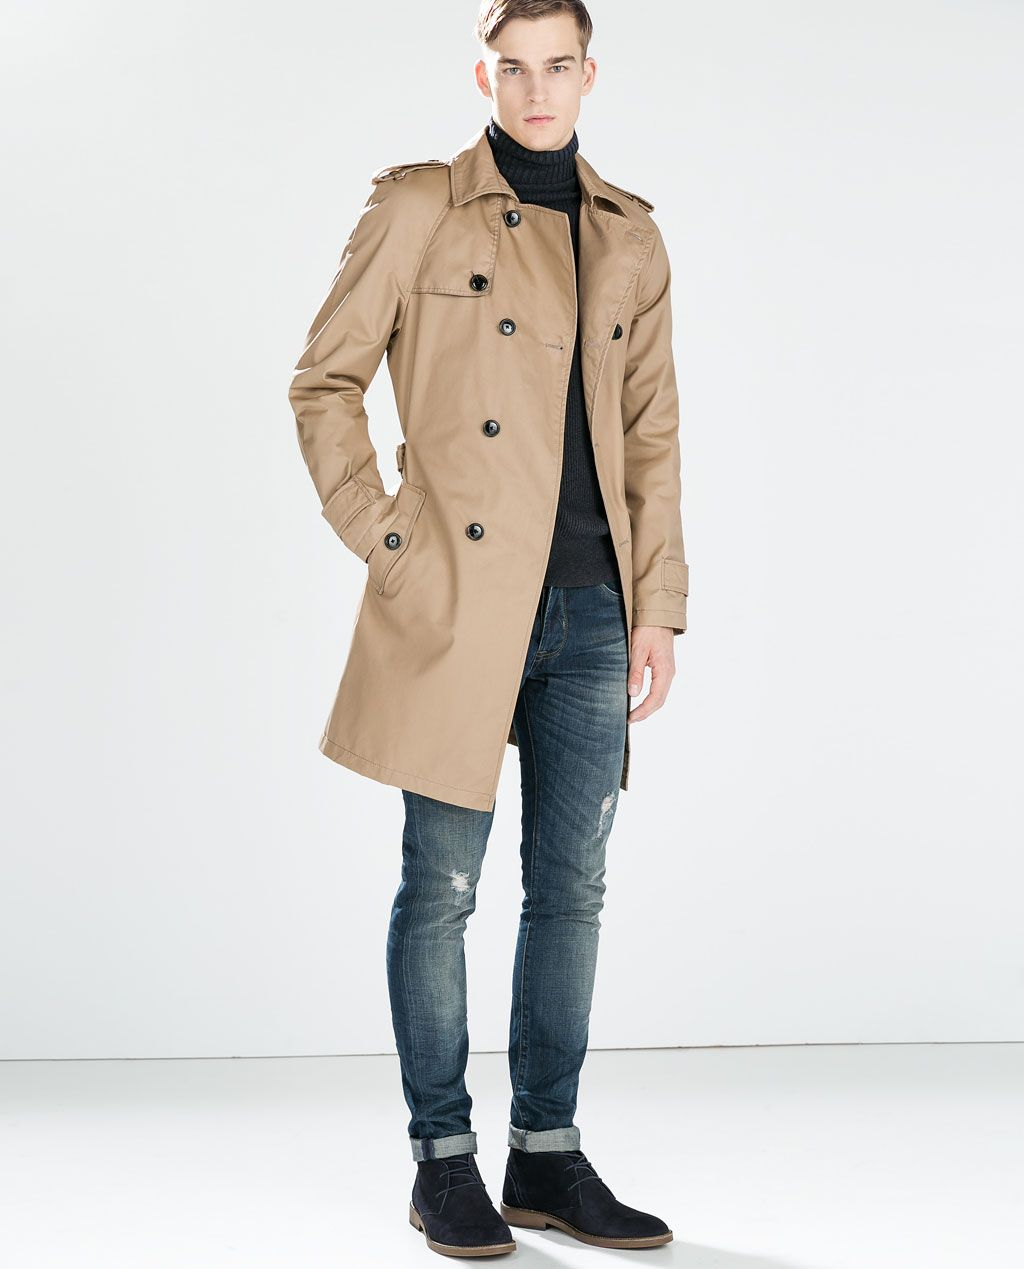 Image 2 Of Oversized Trench Coat From Zara Trenchcoat Manner Winter Outfits Manner Manner Outfit